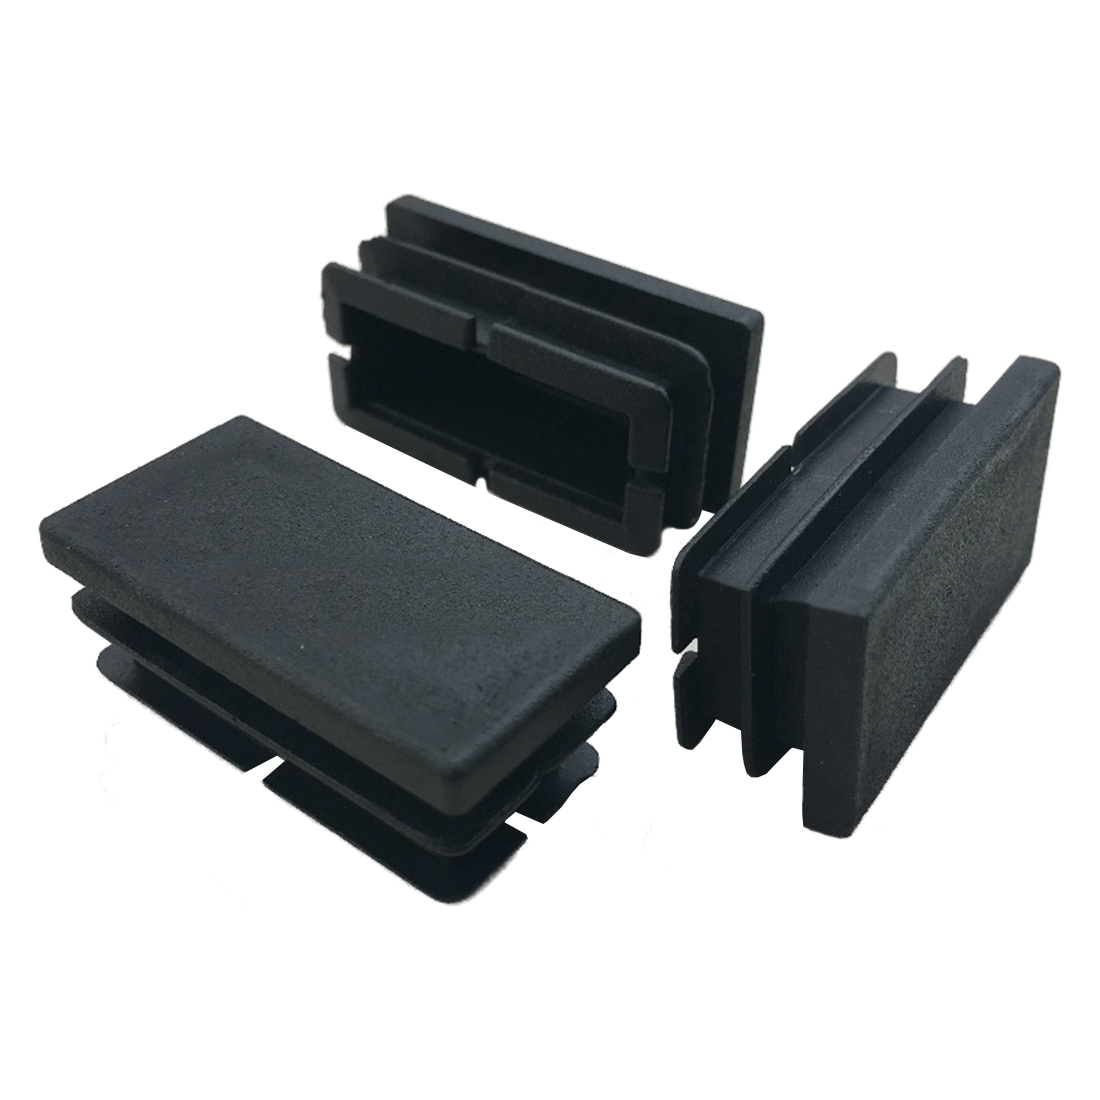 Promotion! 8 Pcs Black Plastic Rectangular Blanking End Caps Inserts 20mm X 40mm Plastic Ribbed For  Assembly And Secure Fitting